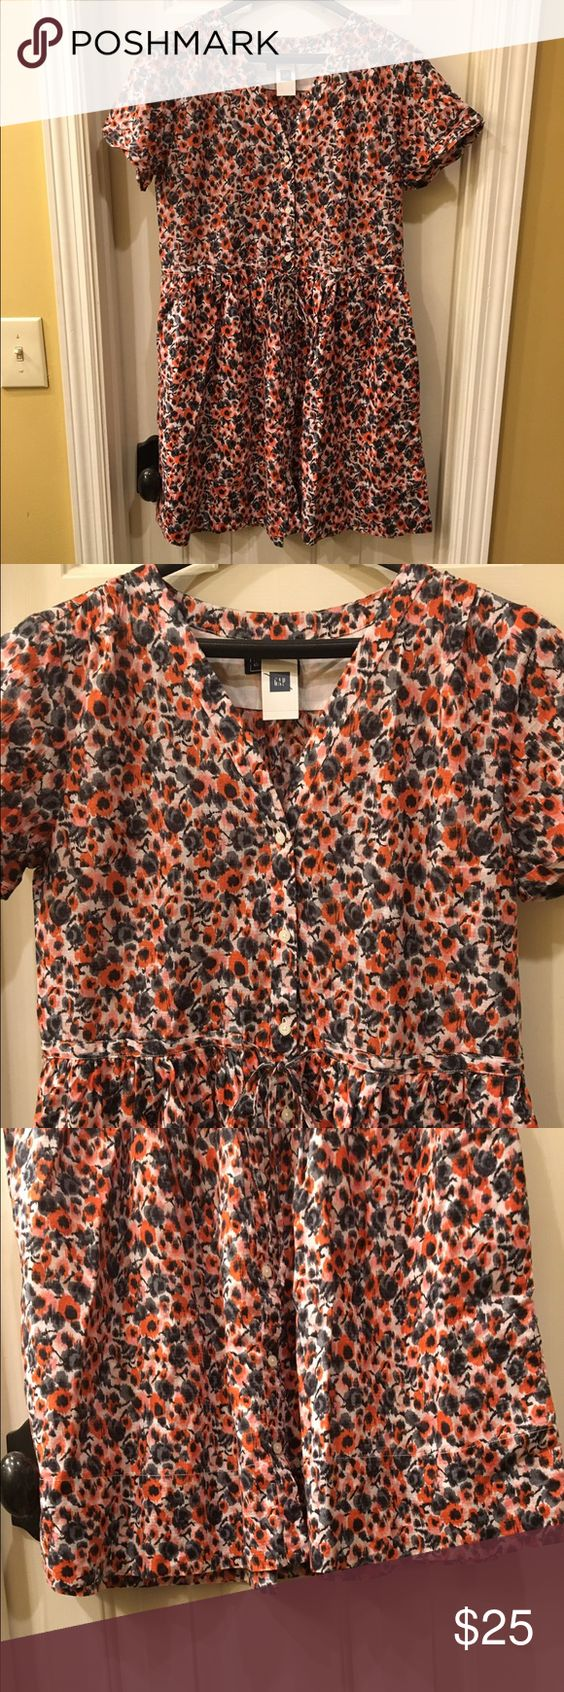 GAP NWT dress size 6 NWT dress is fully lined with front pocket detail Size 6 retail tags attached no flaws Gap Dresses